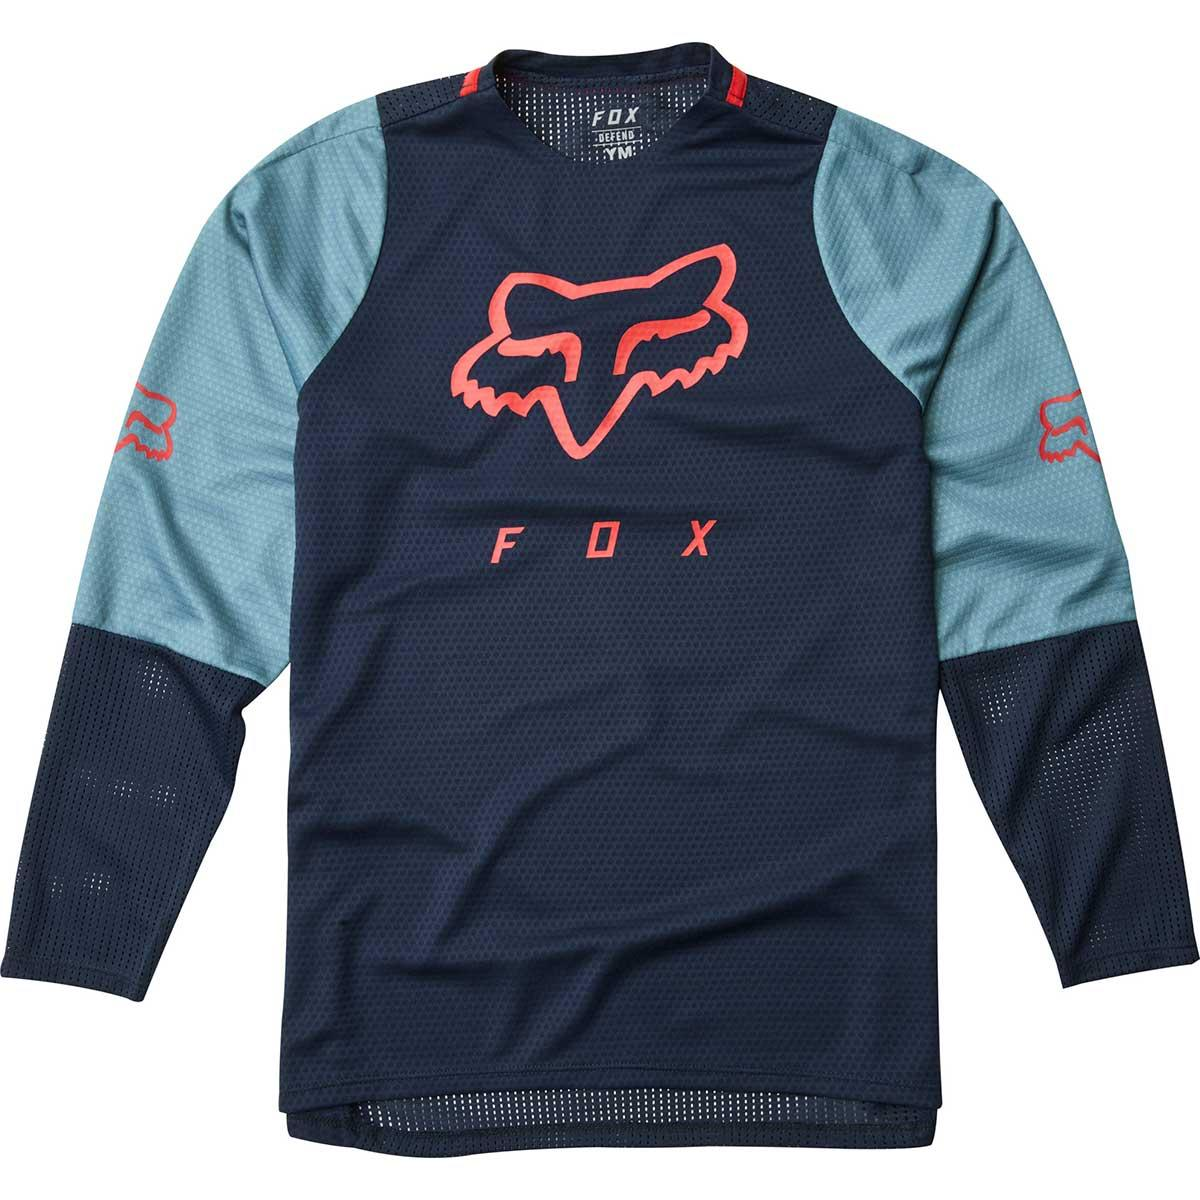 Fox kids' Defend Long Sleeve Jersey in Navy